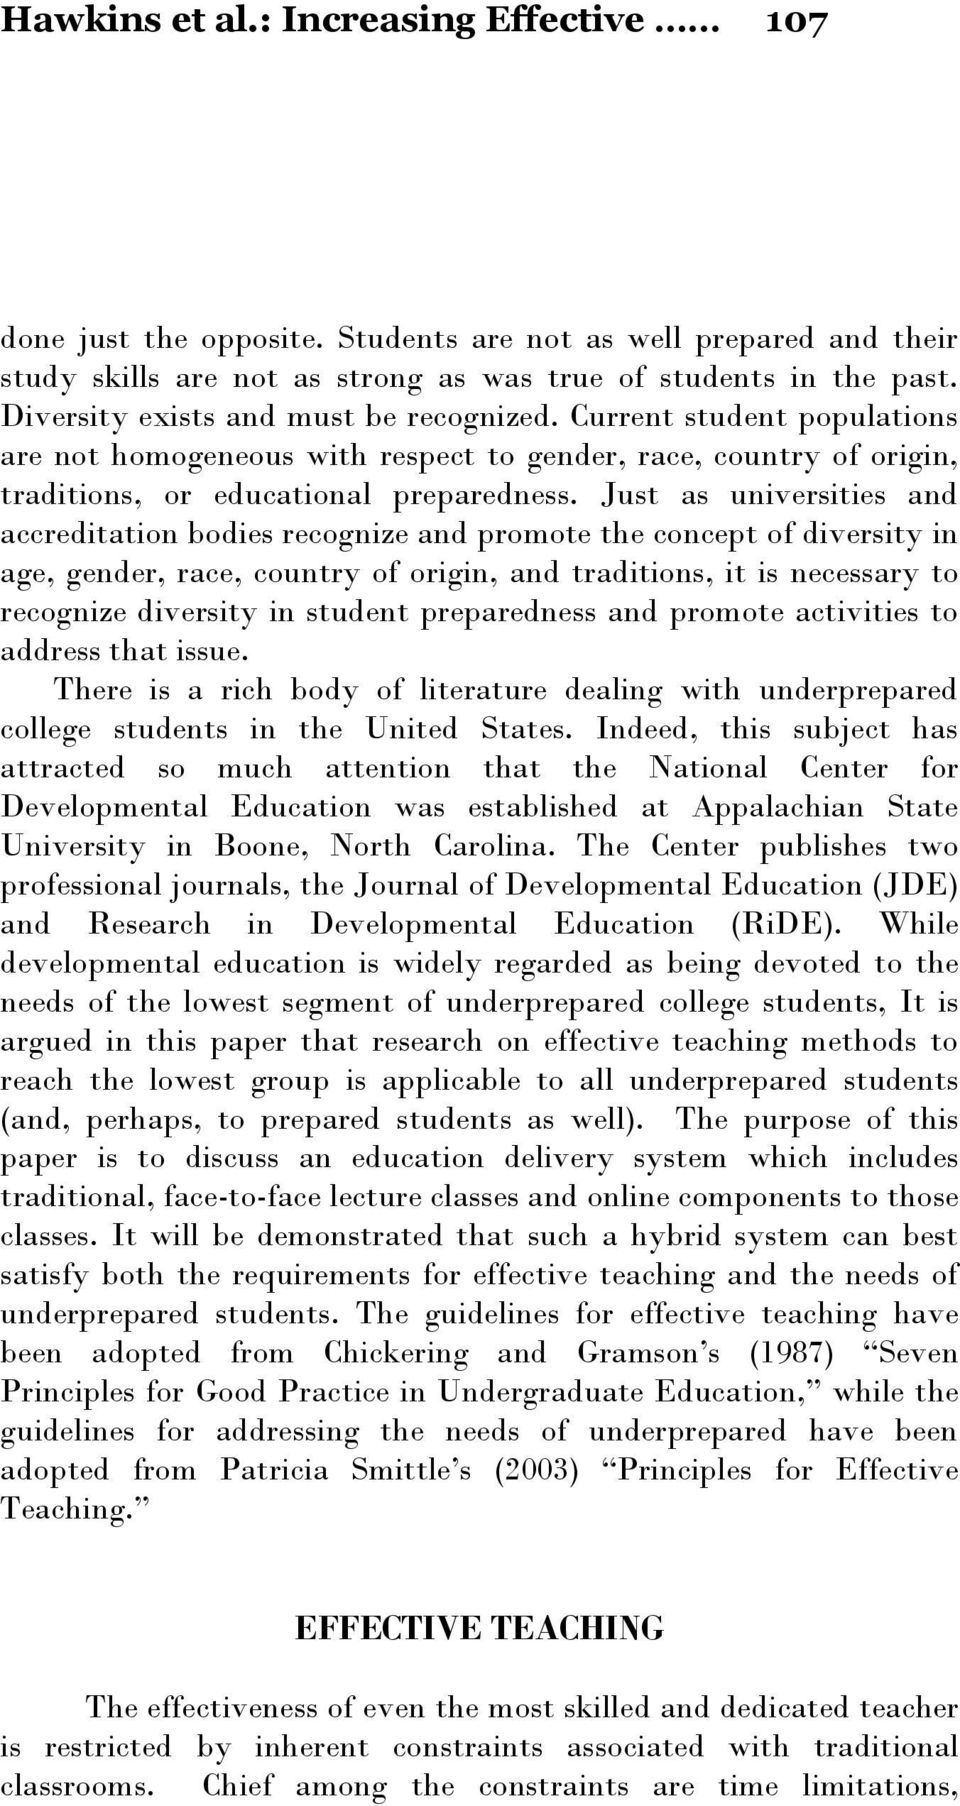 Just as universities and accreditation bodies recognize and promote the concept of diversity in age, gender, race, country of origin, and traditions, it is necessary to recognize diversity in student